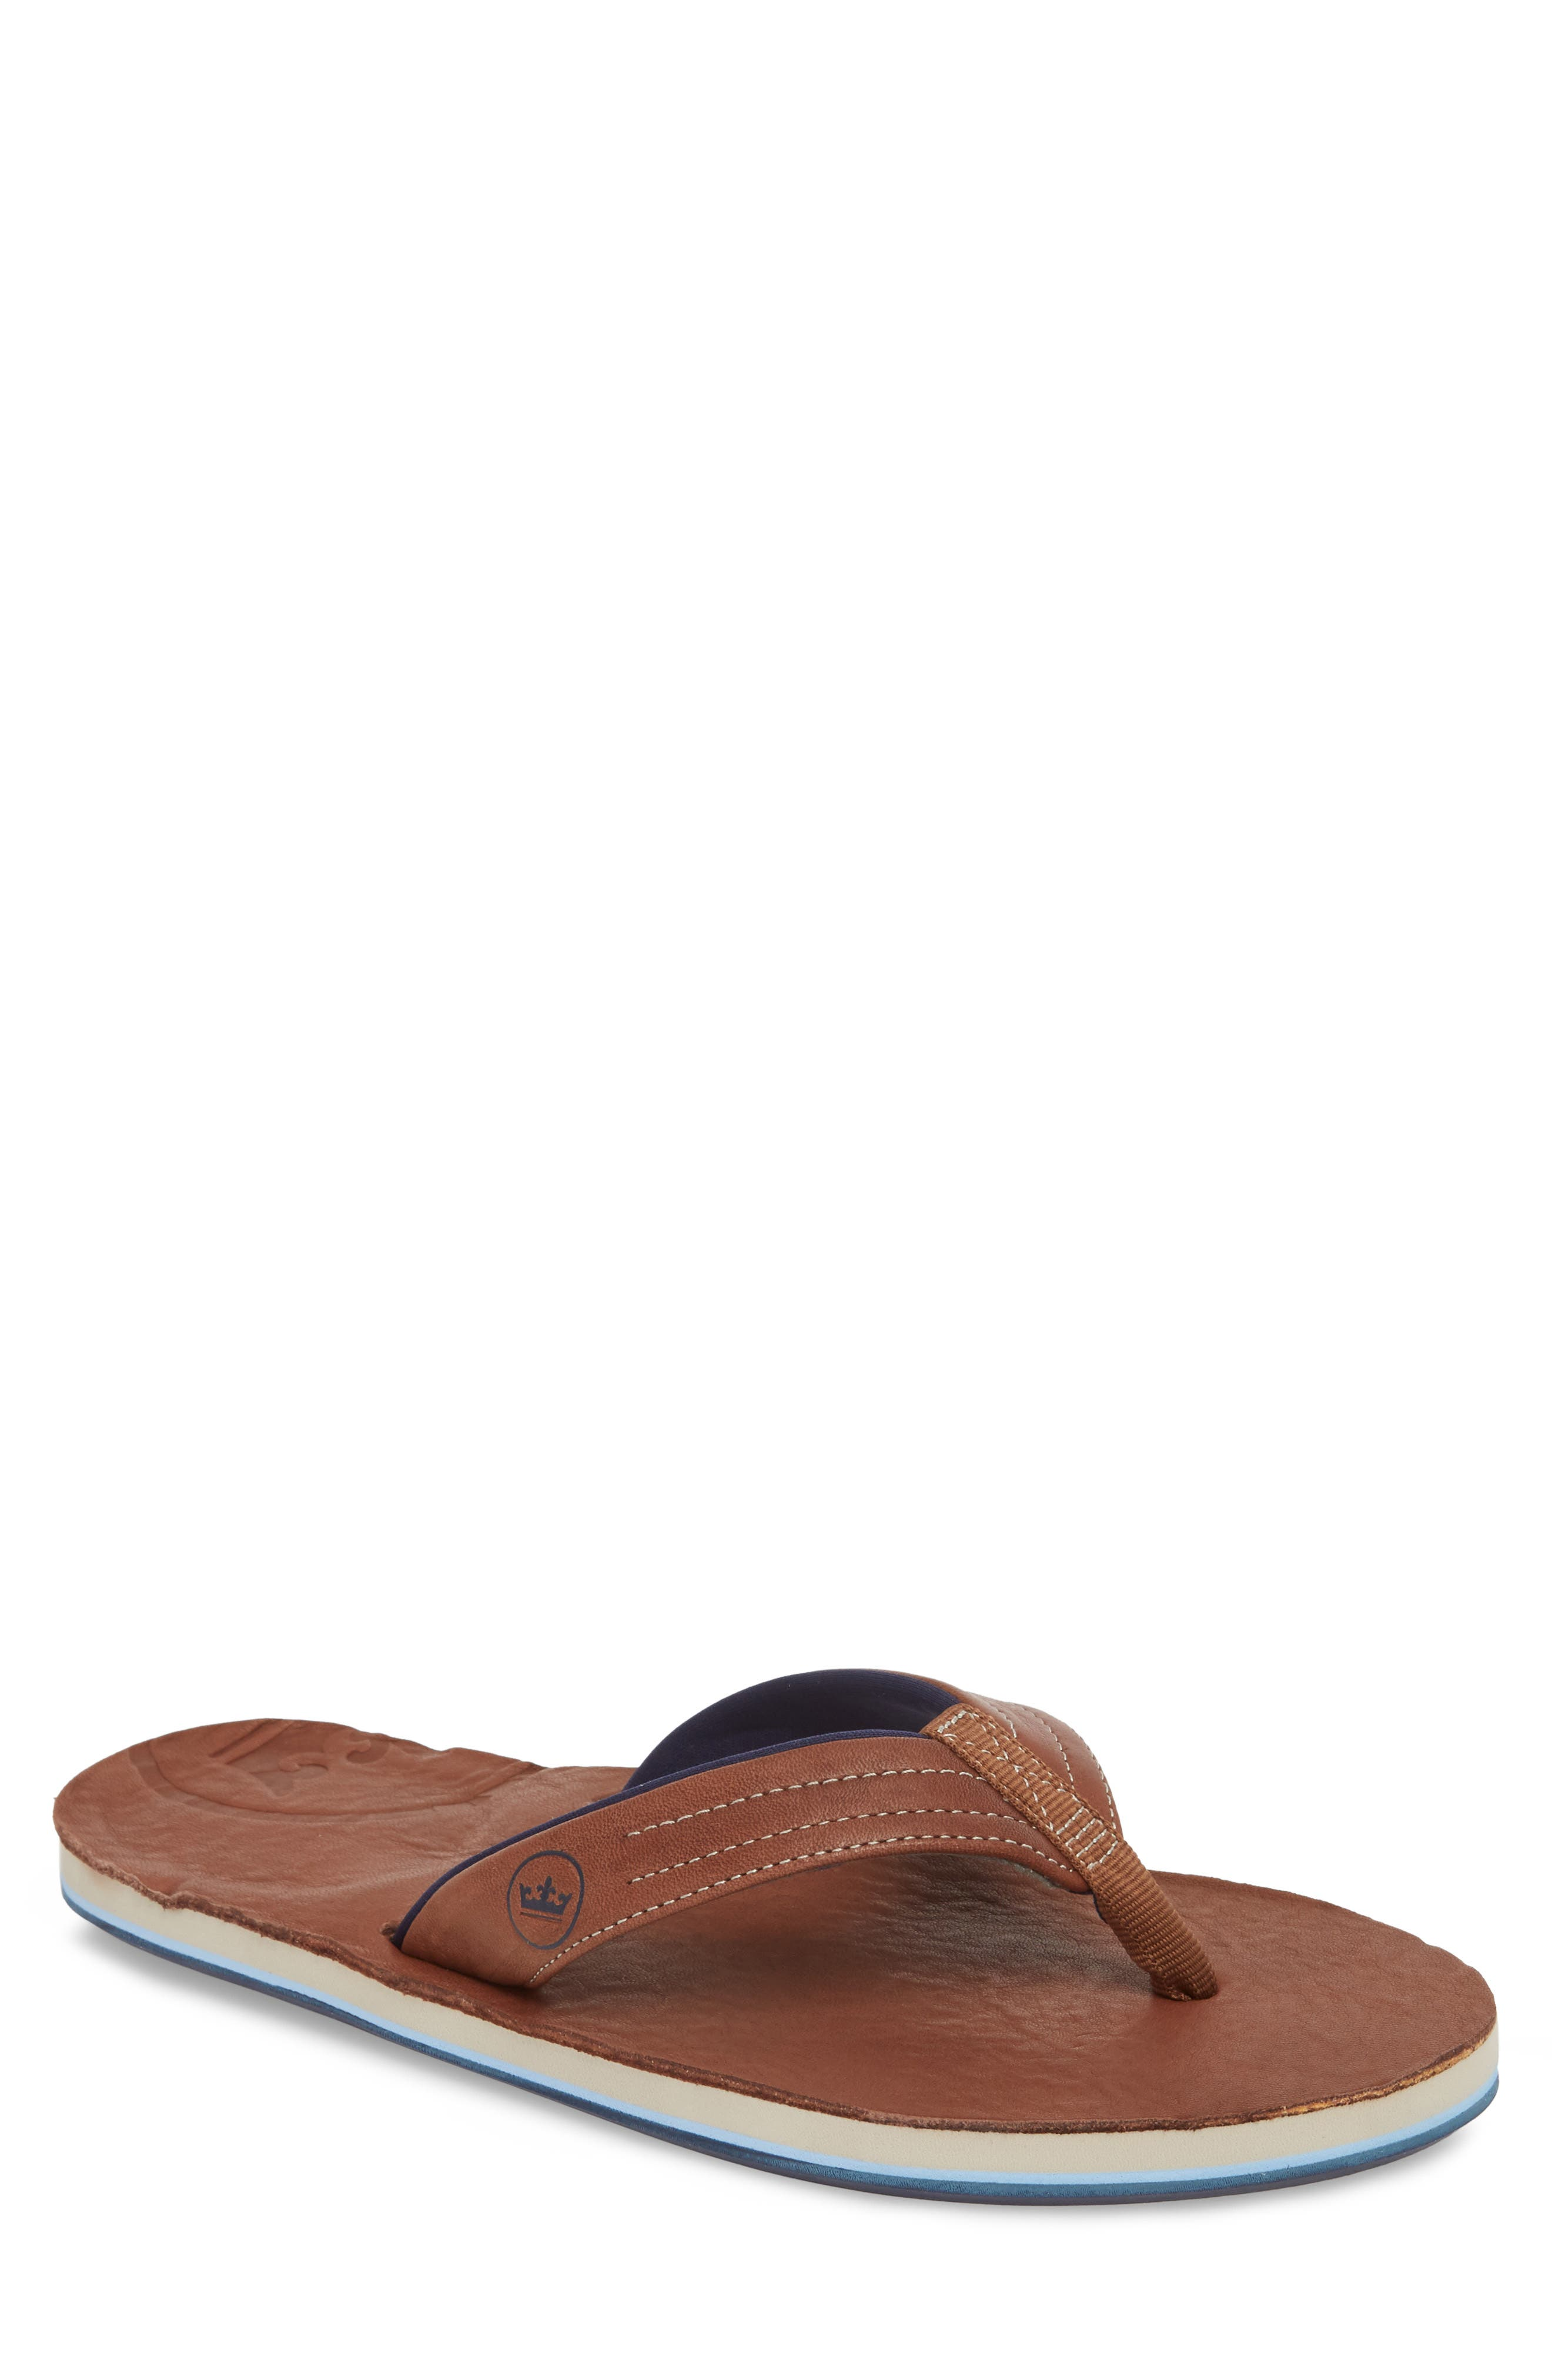 hari mari x Peter Millar Leather Flip Flop (Men)